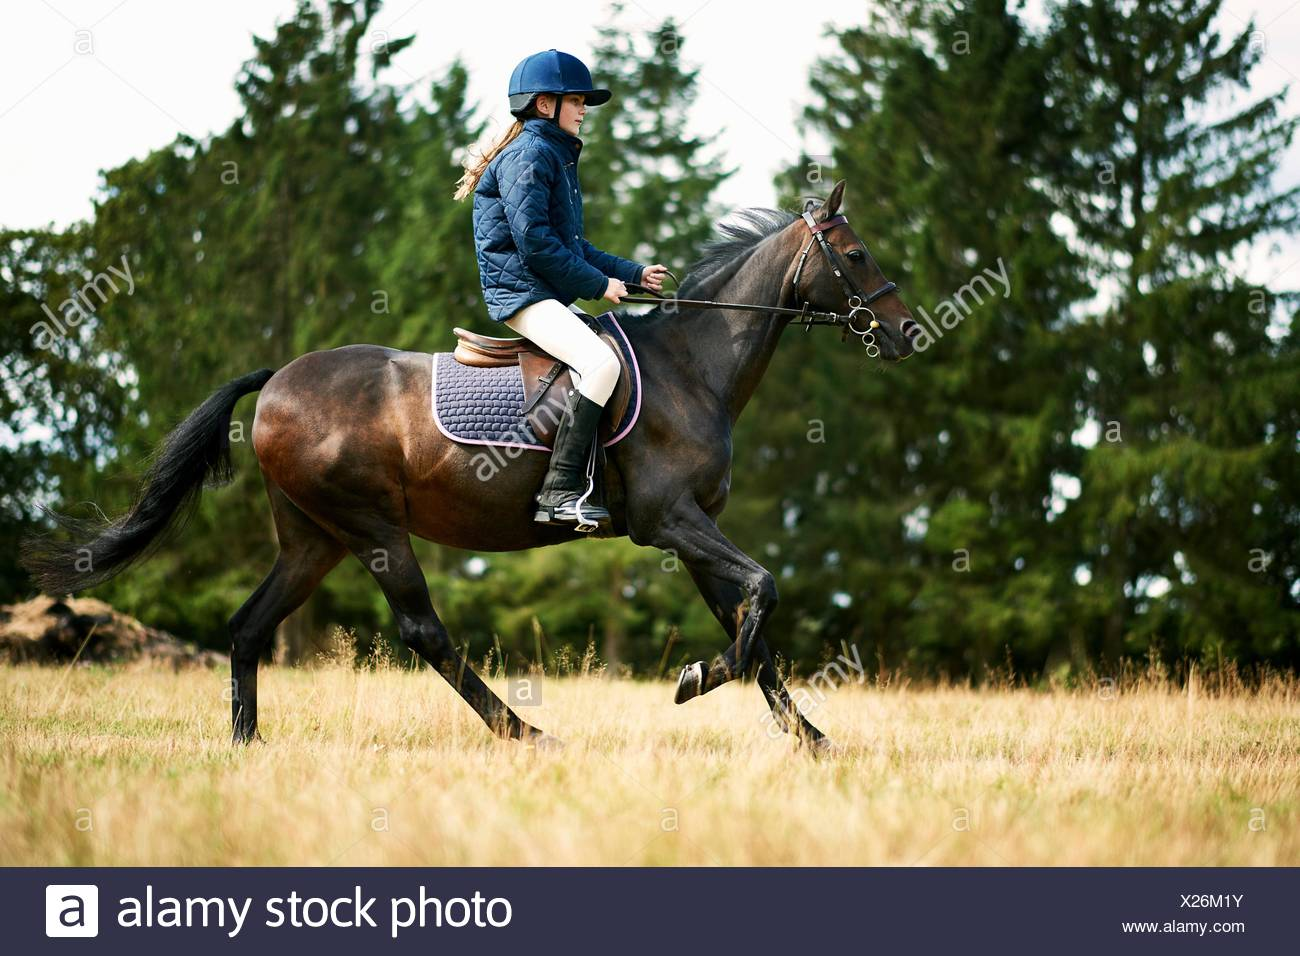 Girl riding horse in field Stock Photo